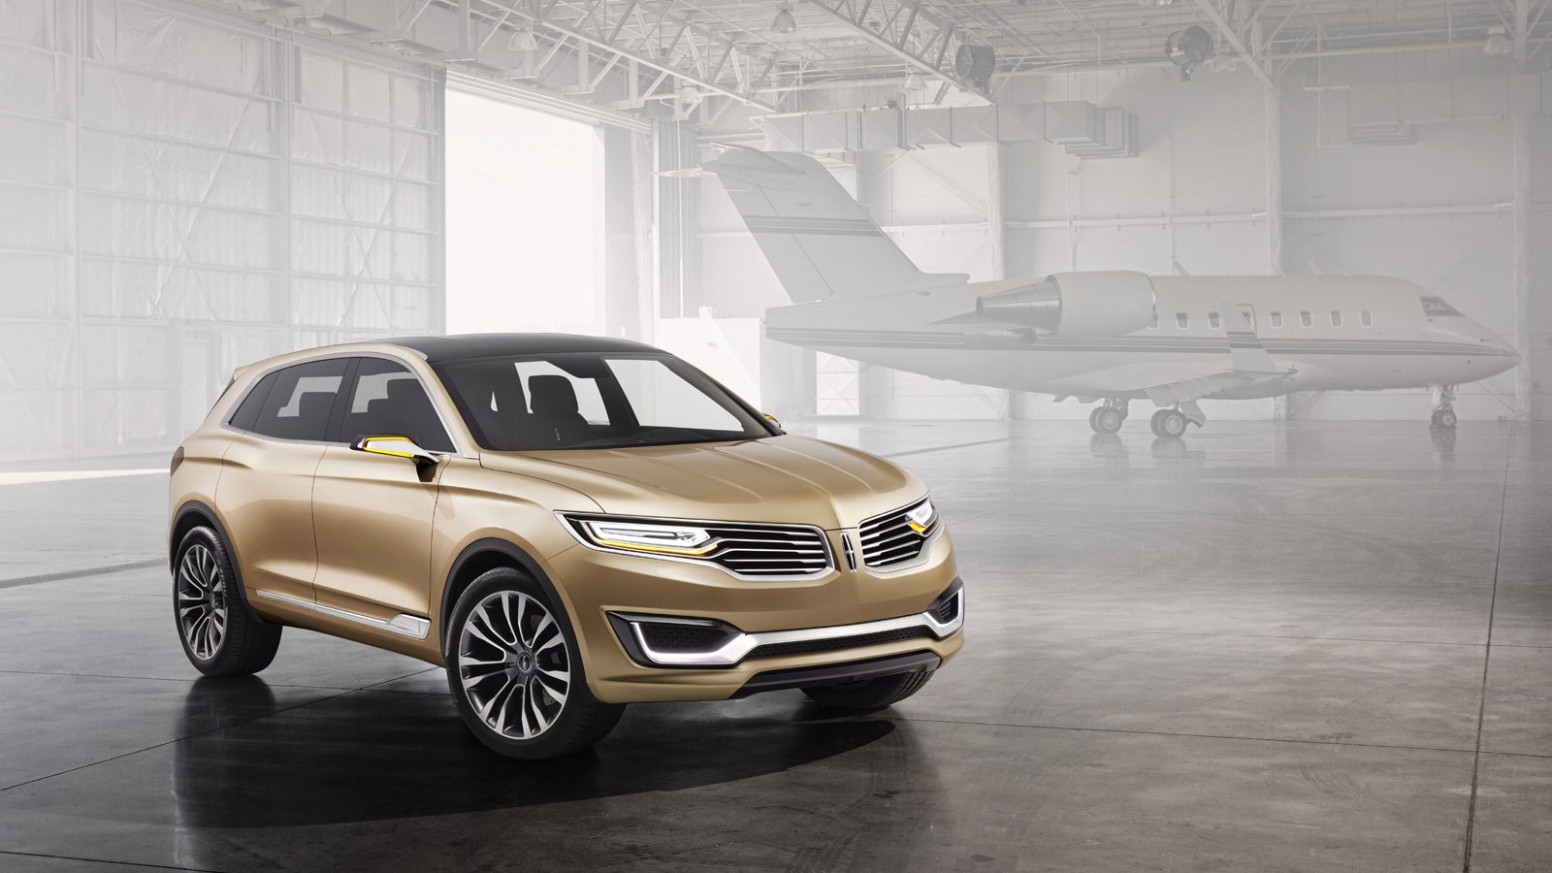 Performance 2022 Lincoln Mkx At Beijing Motor Show